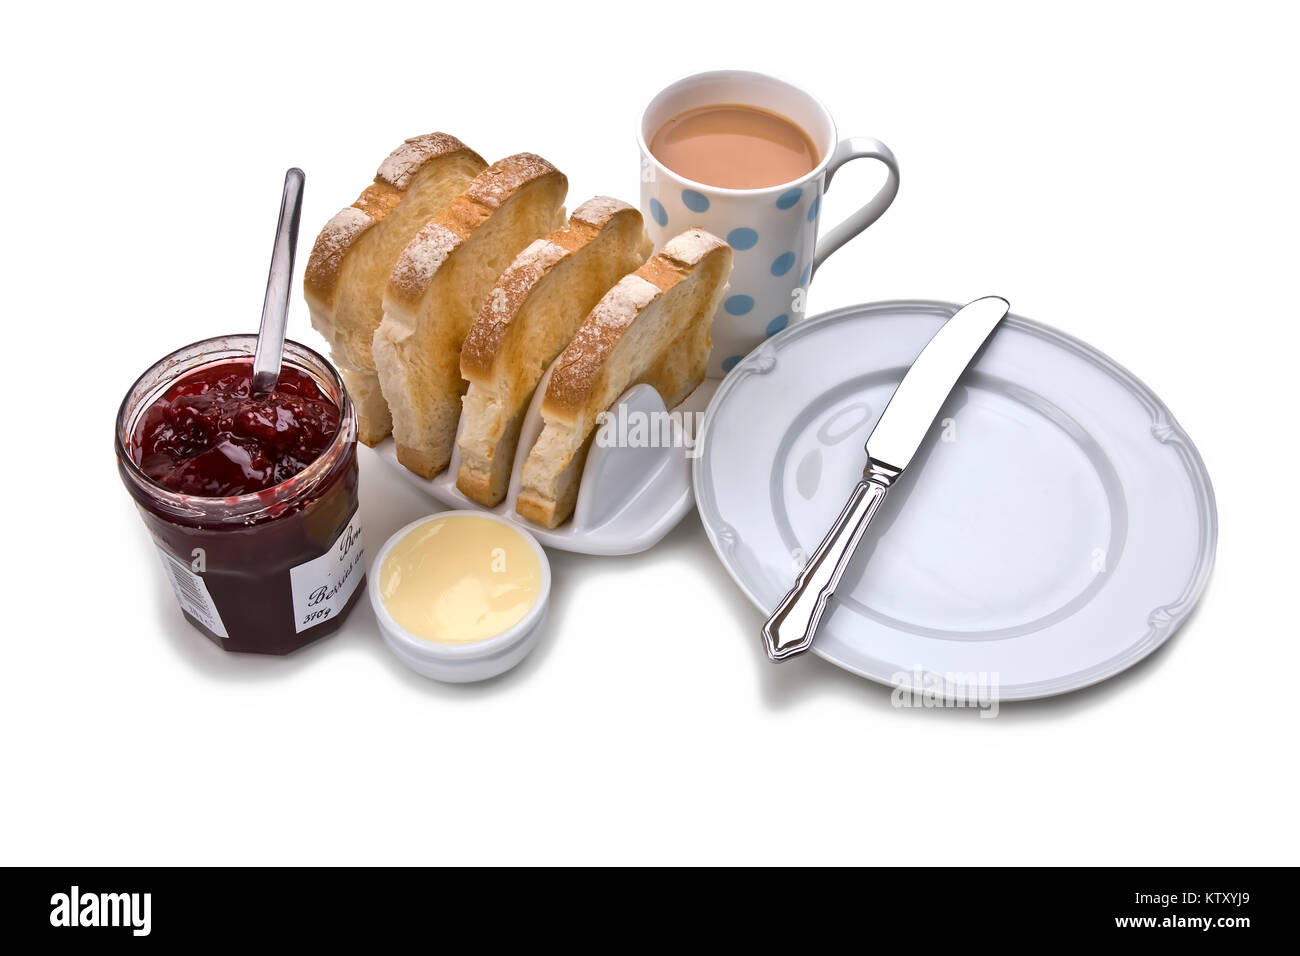 White toast breakfast with ceramic toast rack butter; red jam mug of tea serving plate and knife on white background  sc 1 st  Alamy & White toast breakfast with ceramic toast rack butter; red jam mug ...